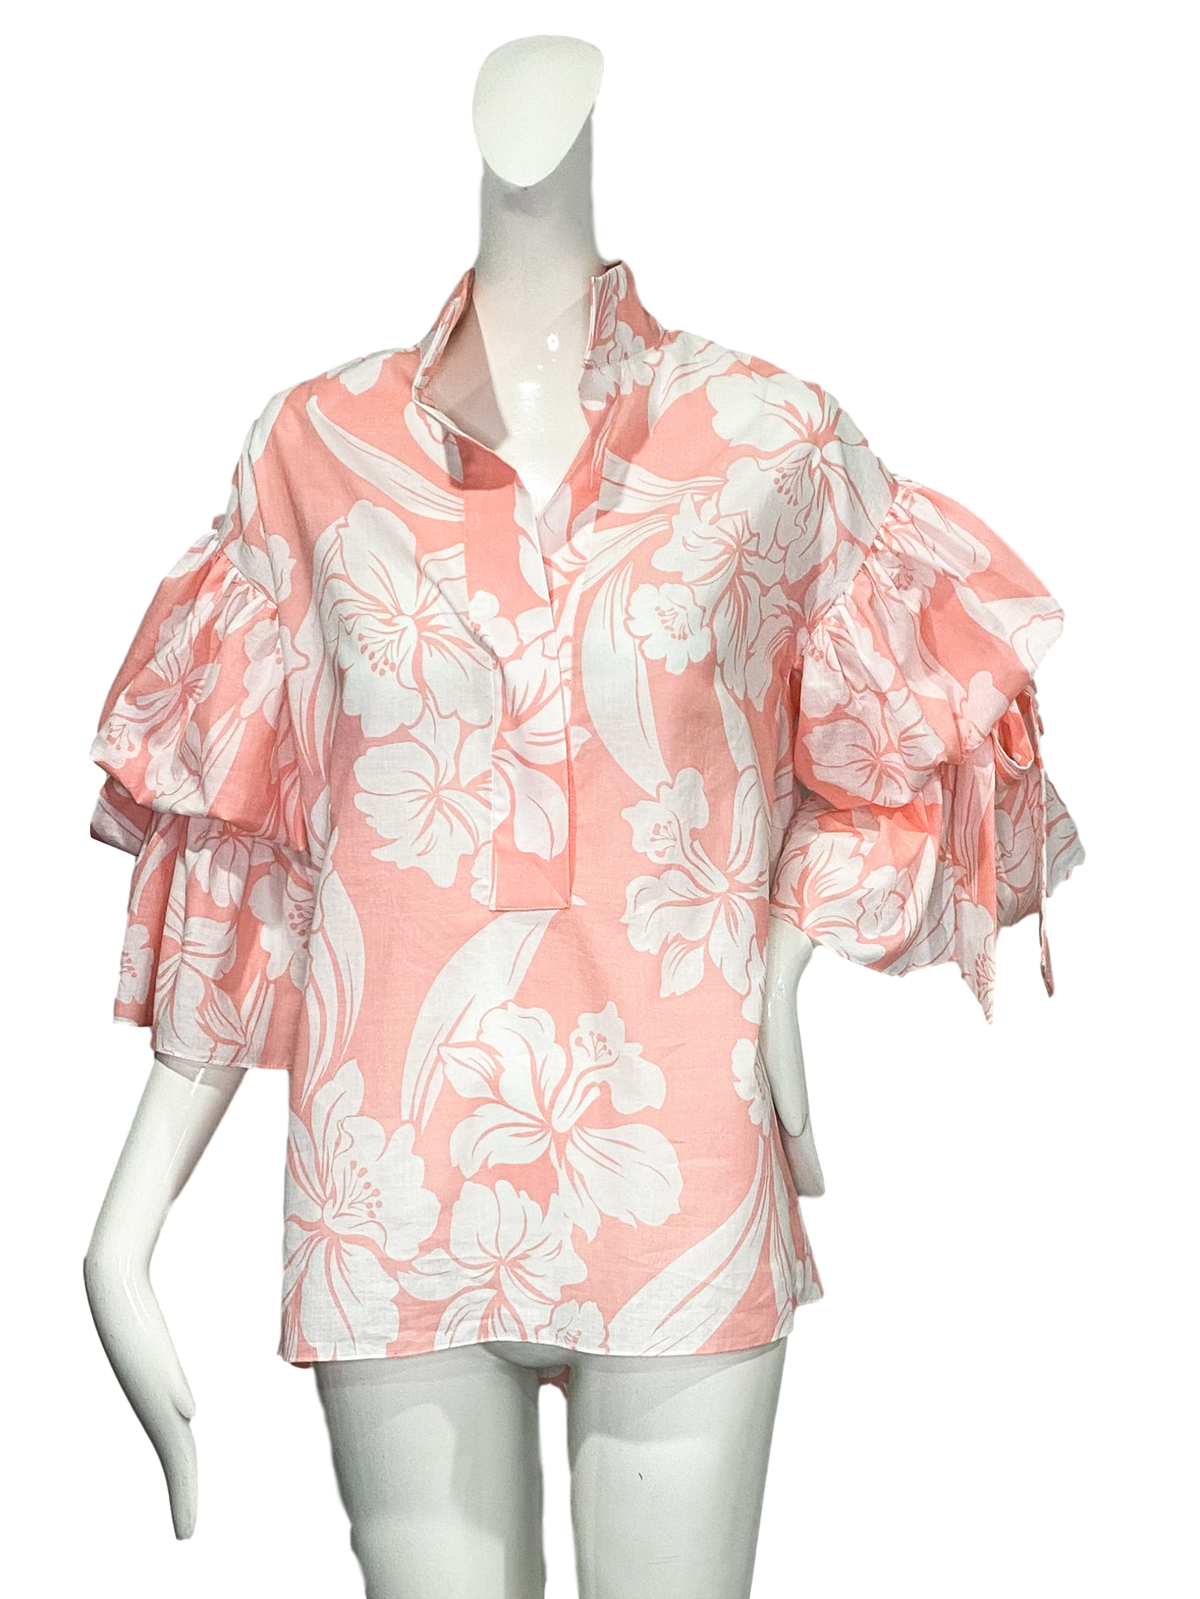 Stillwell Top |  Pink & White Tropical Floral Cotton